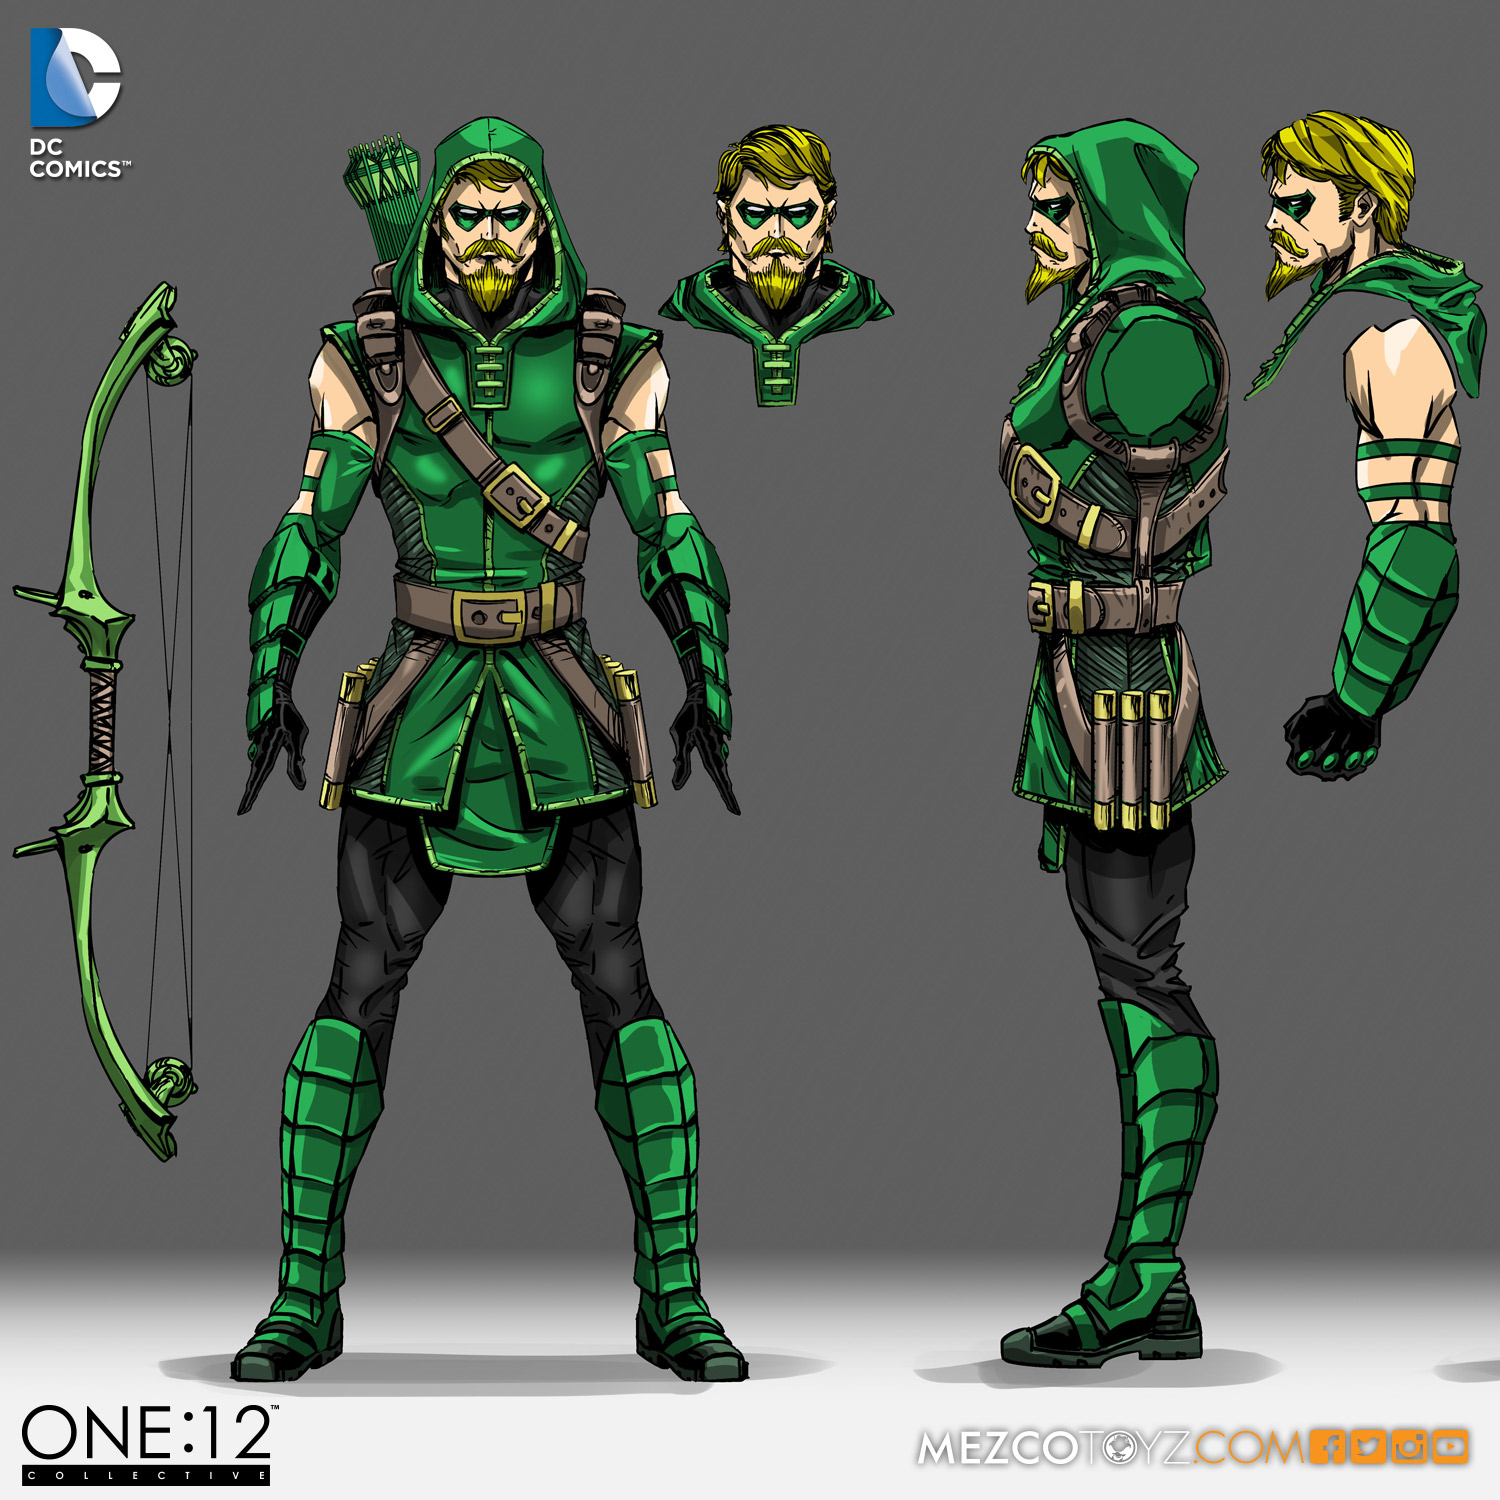 Mezco Toyz Behind The Scenes Look At One:12 Collective Green Arrow Figure